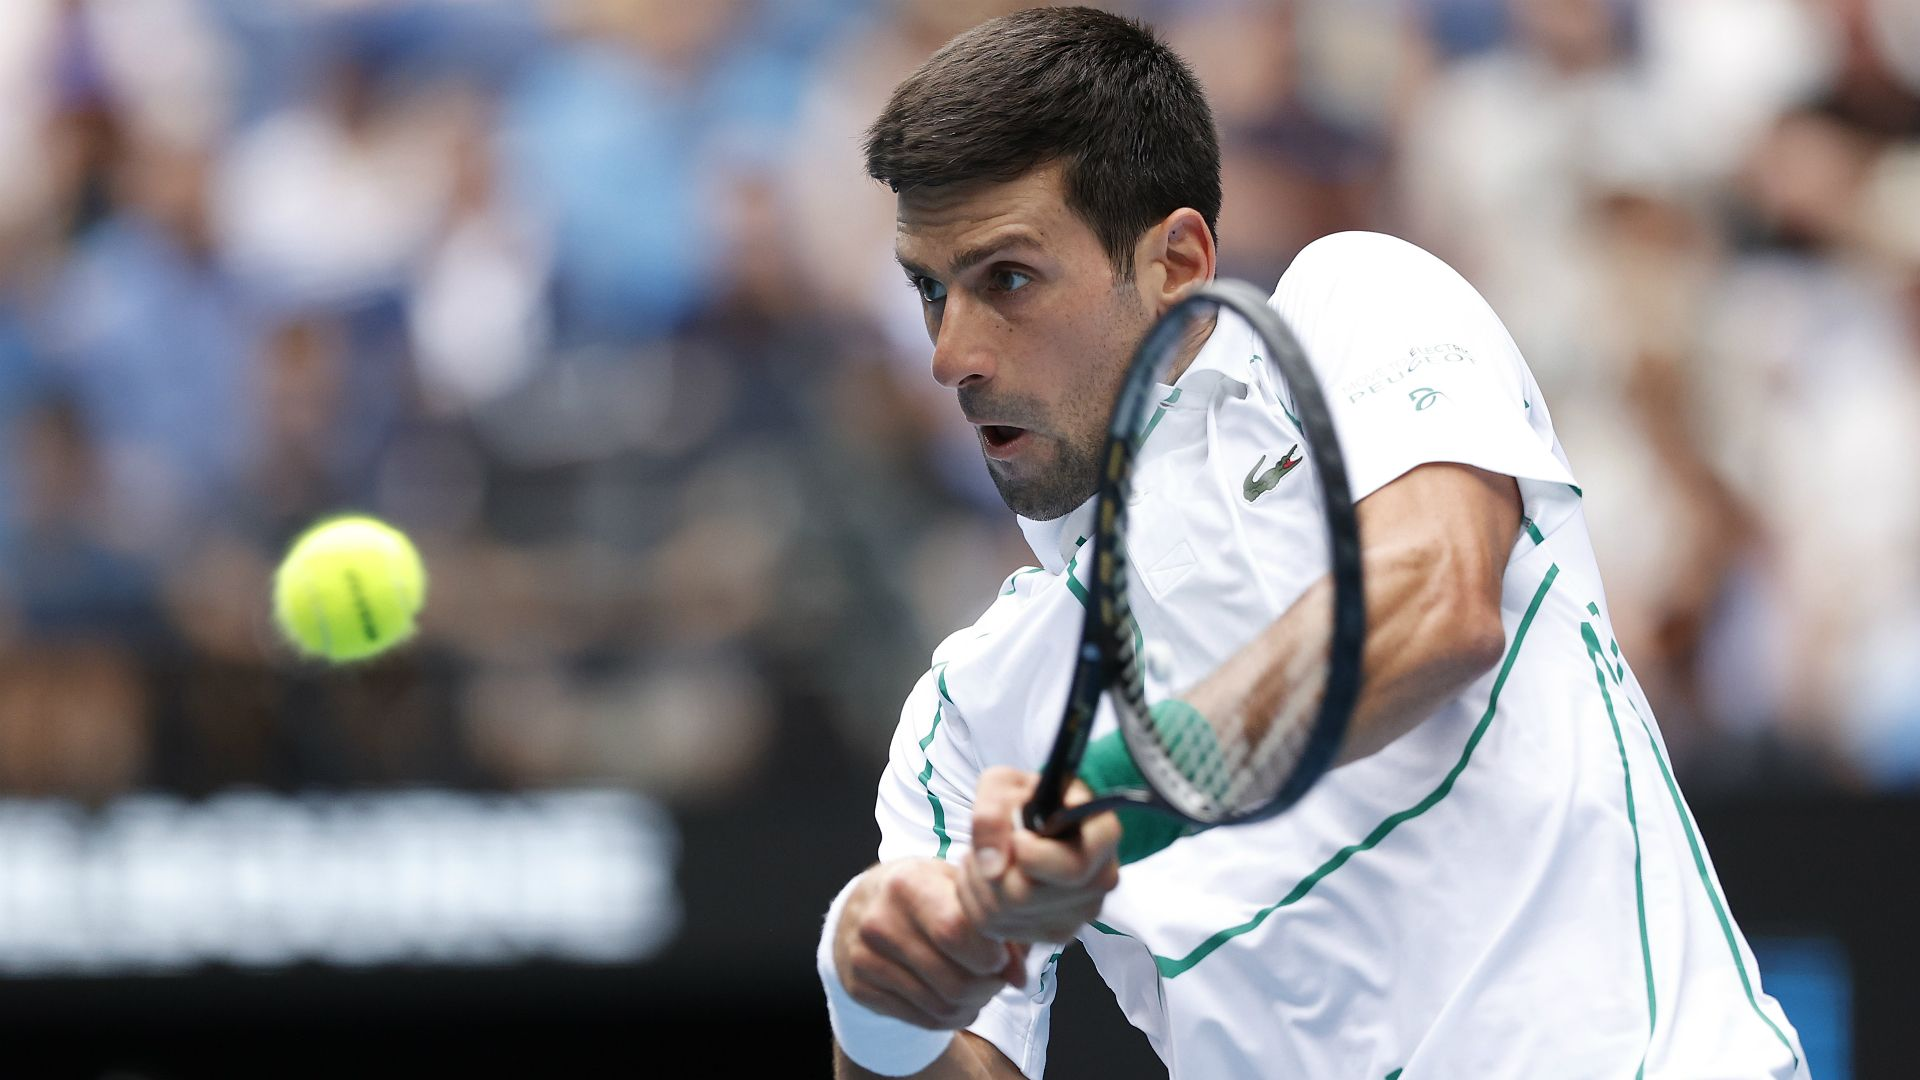 Australian Open 2020 Novak Djokovic results and form ahead of 1920x1080